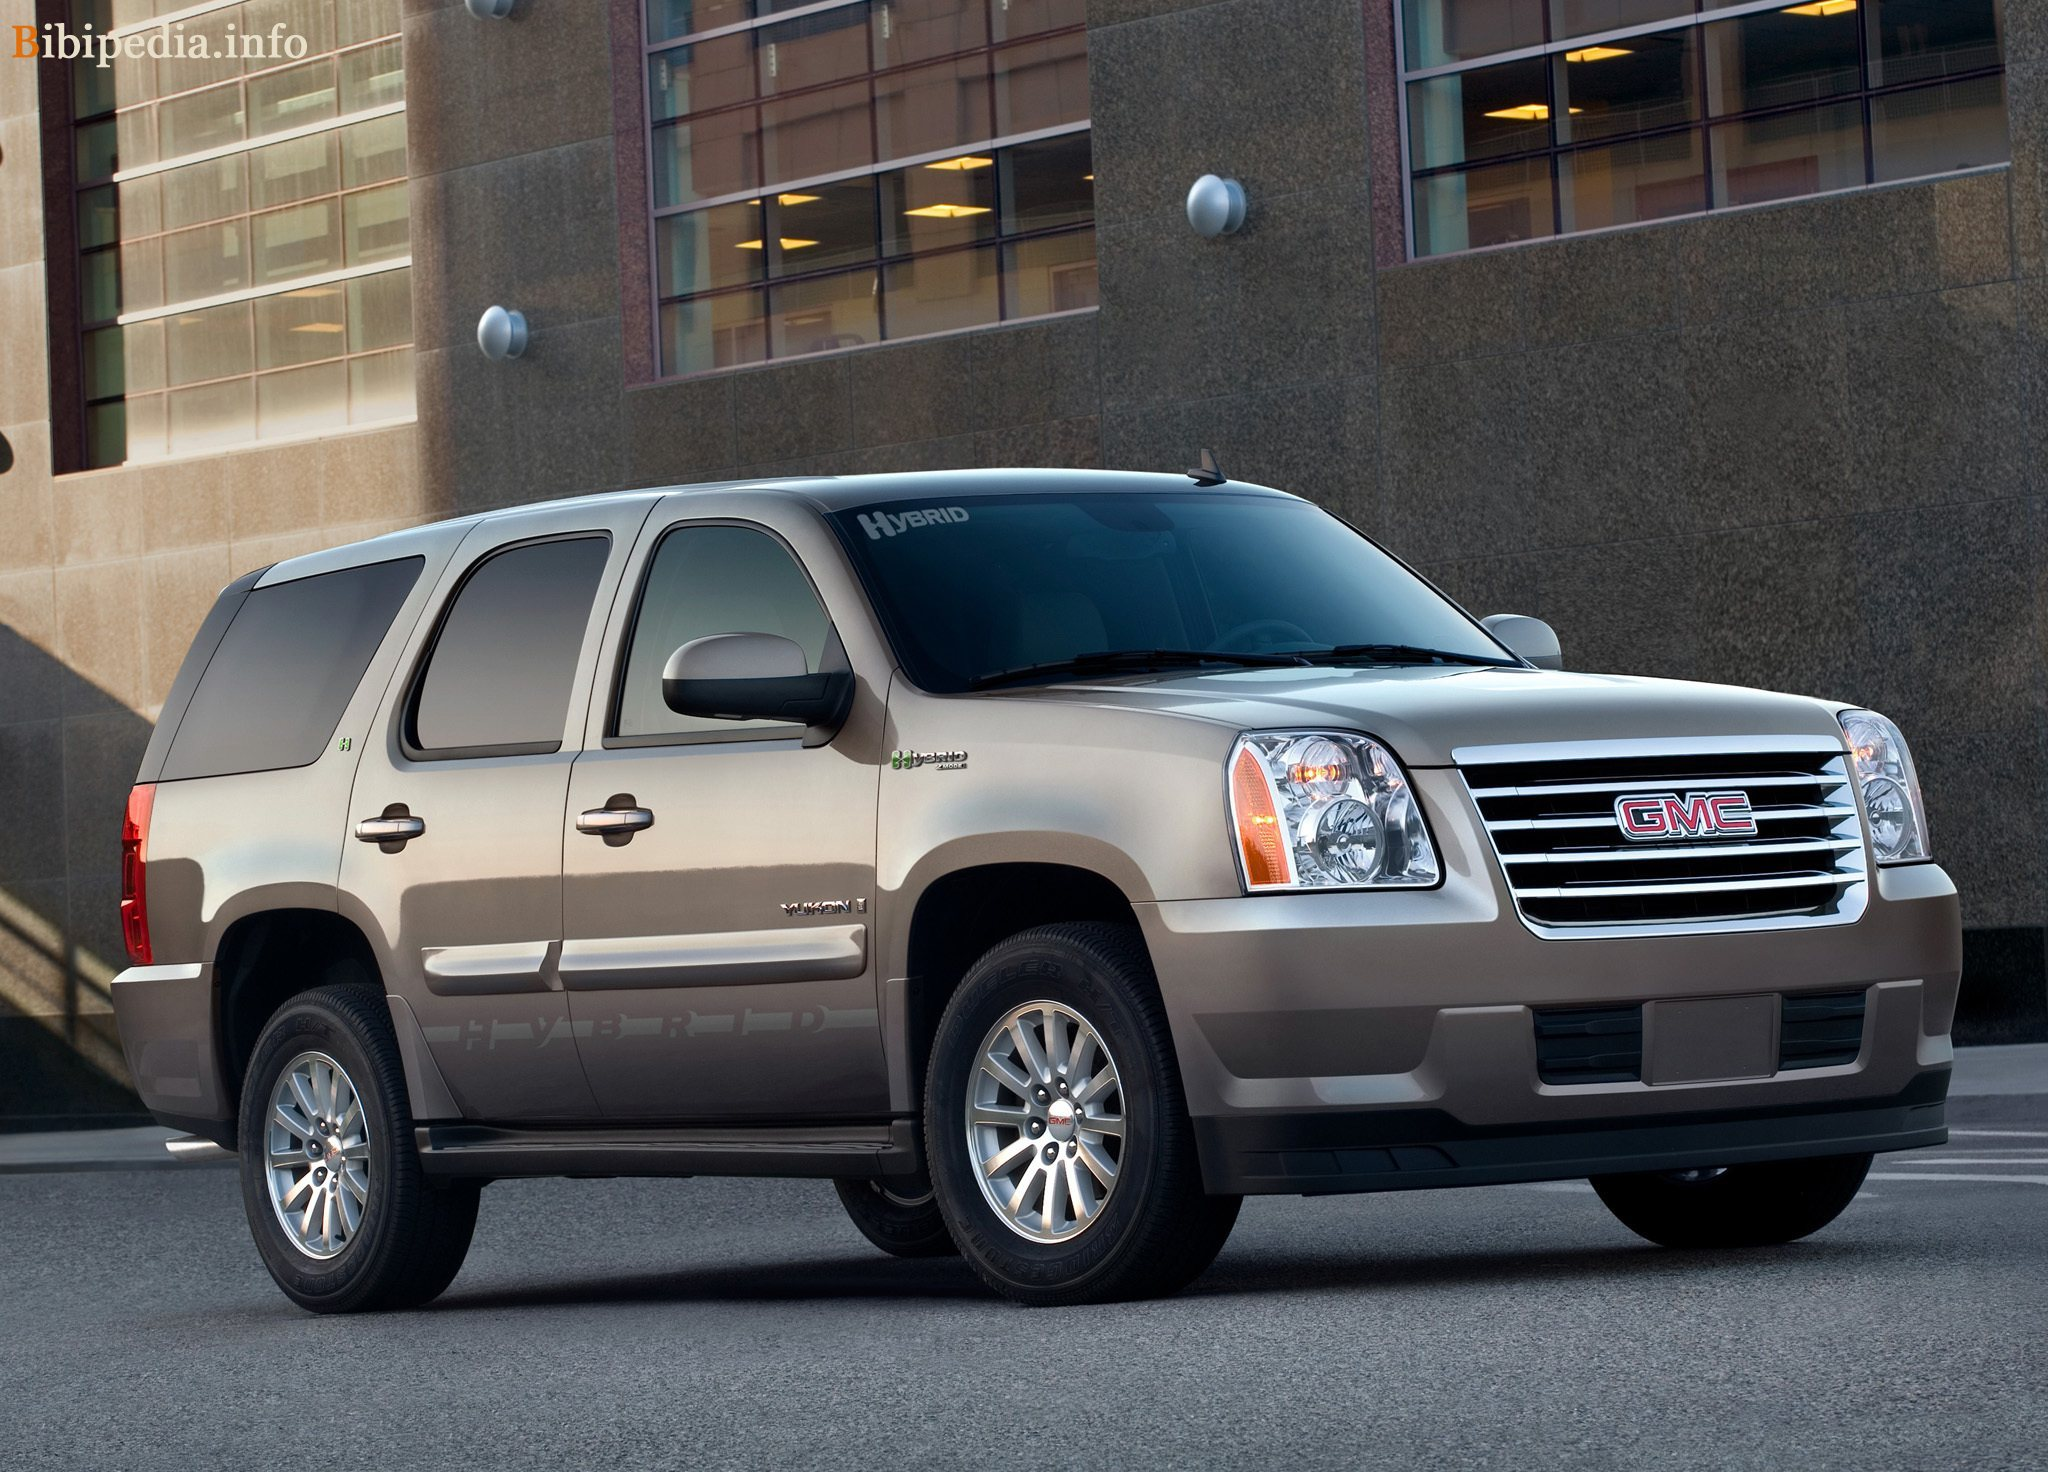 2007 GMC Yukon photo - 3